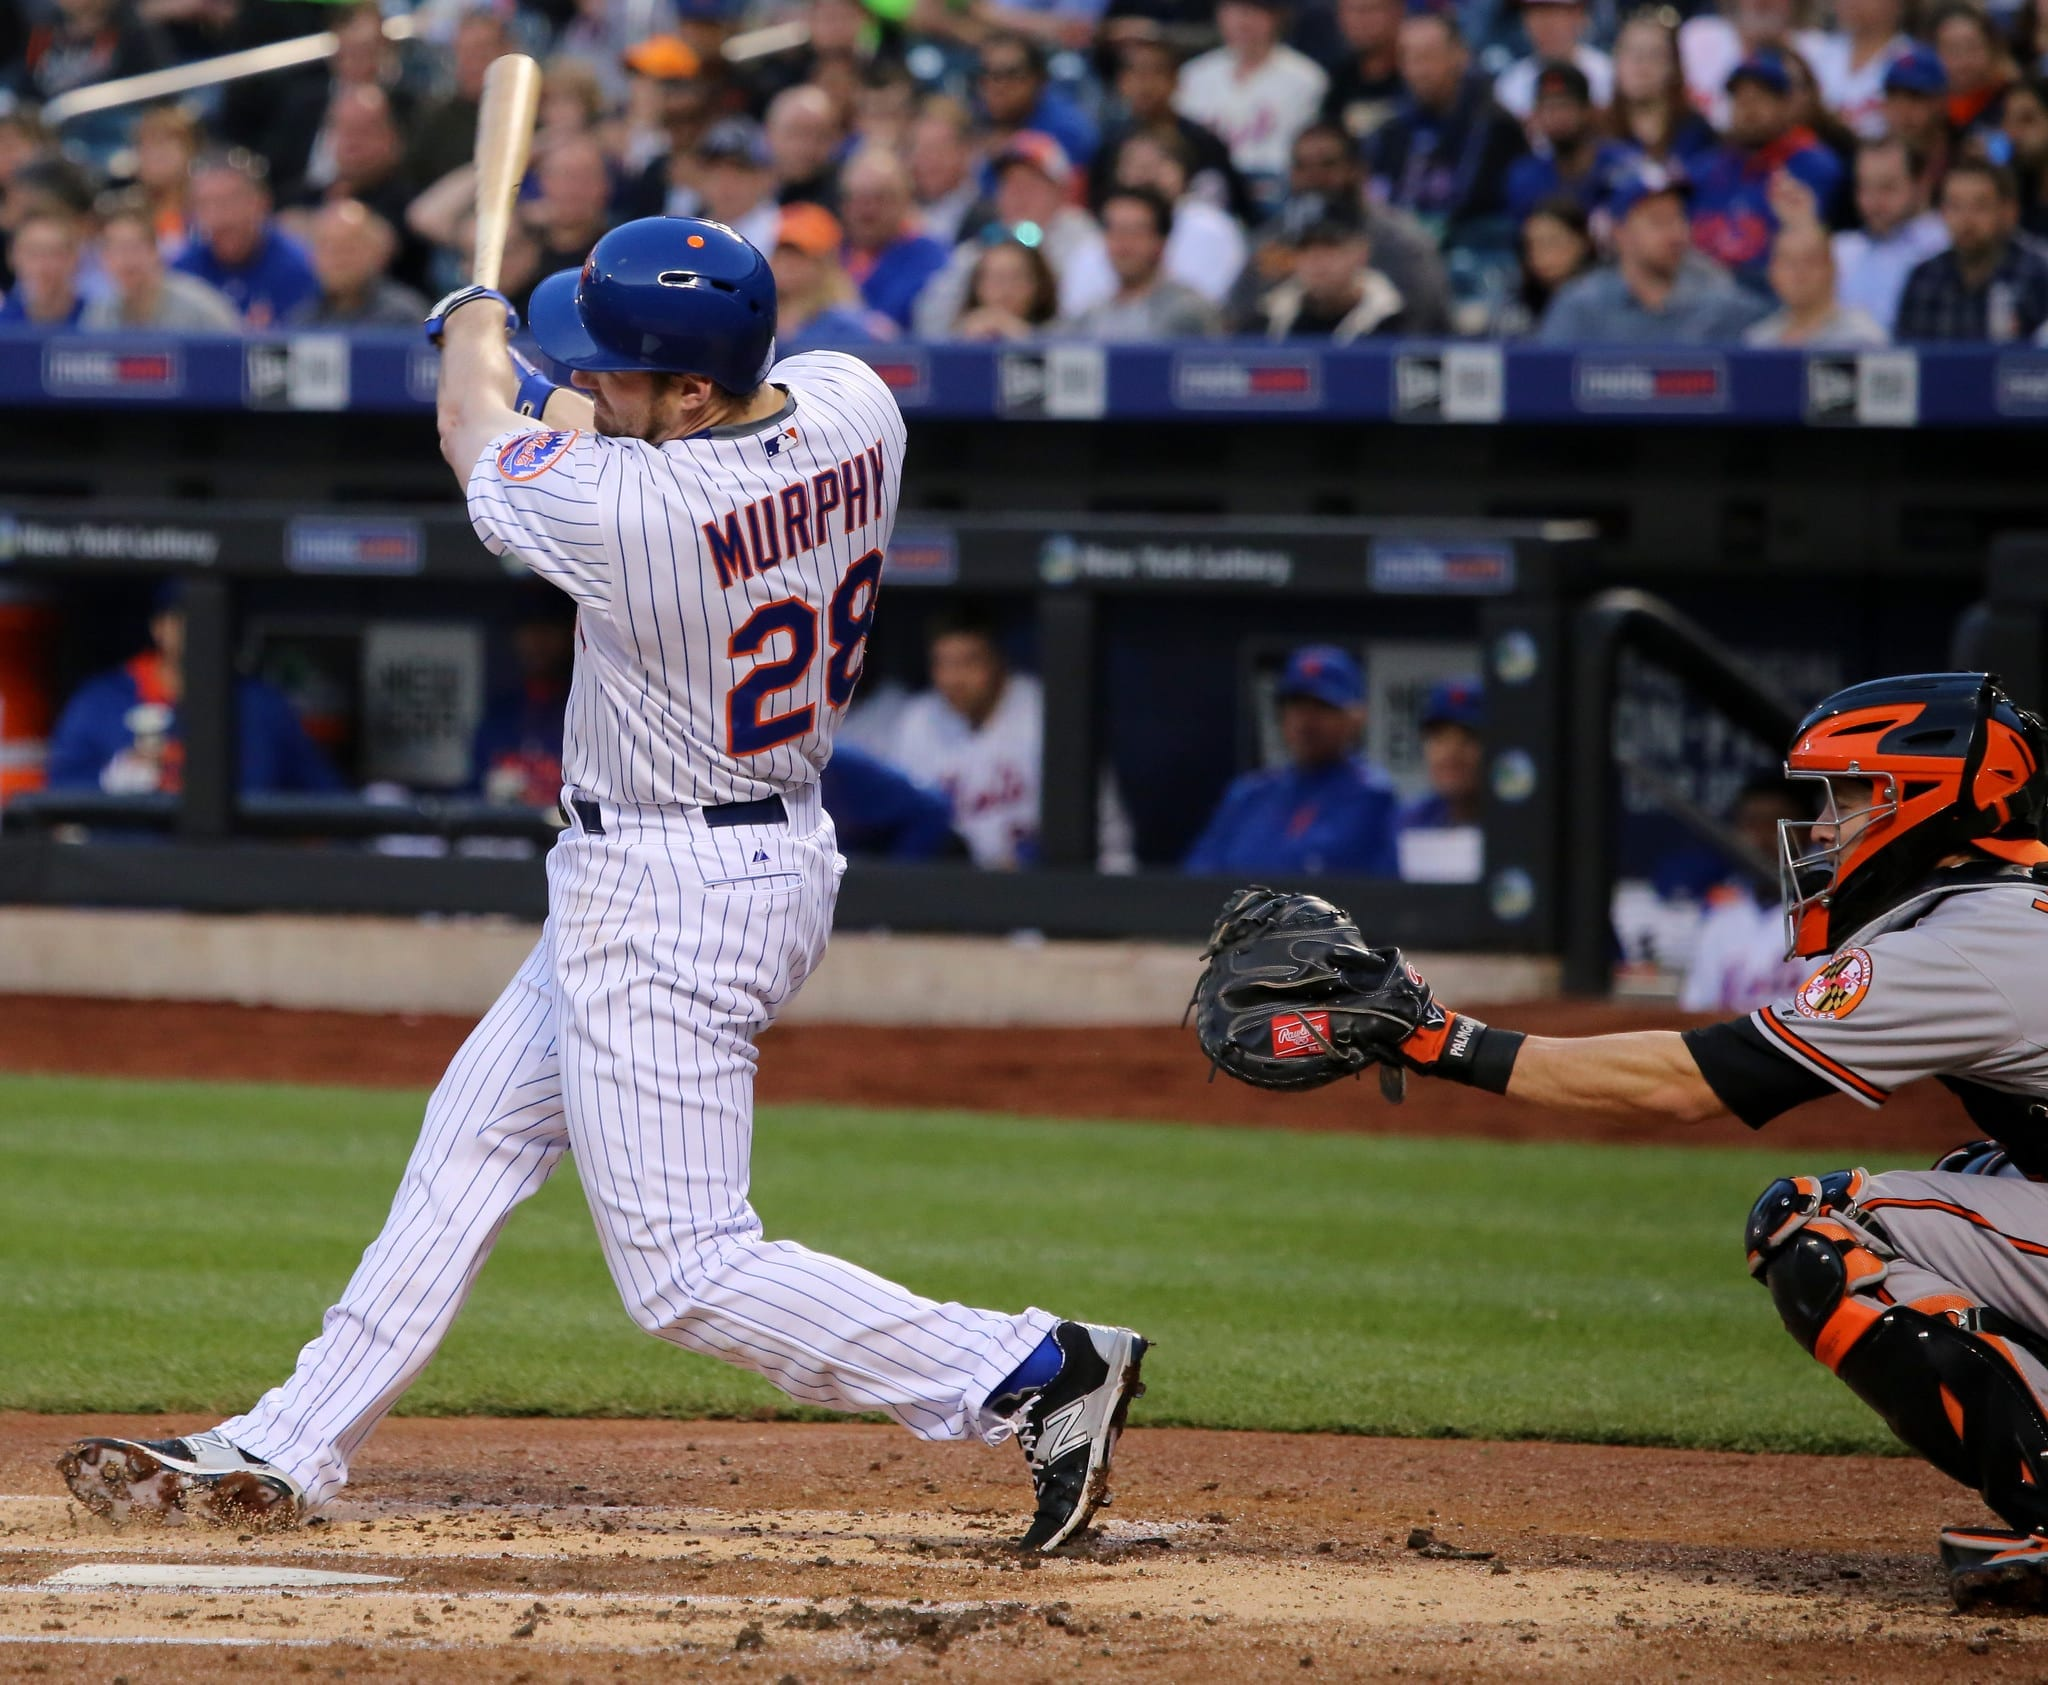 Daniel Murphy does not care about your space-time continuum